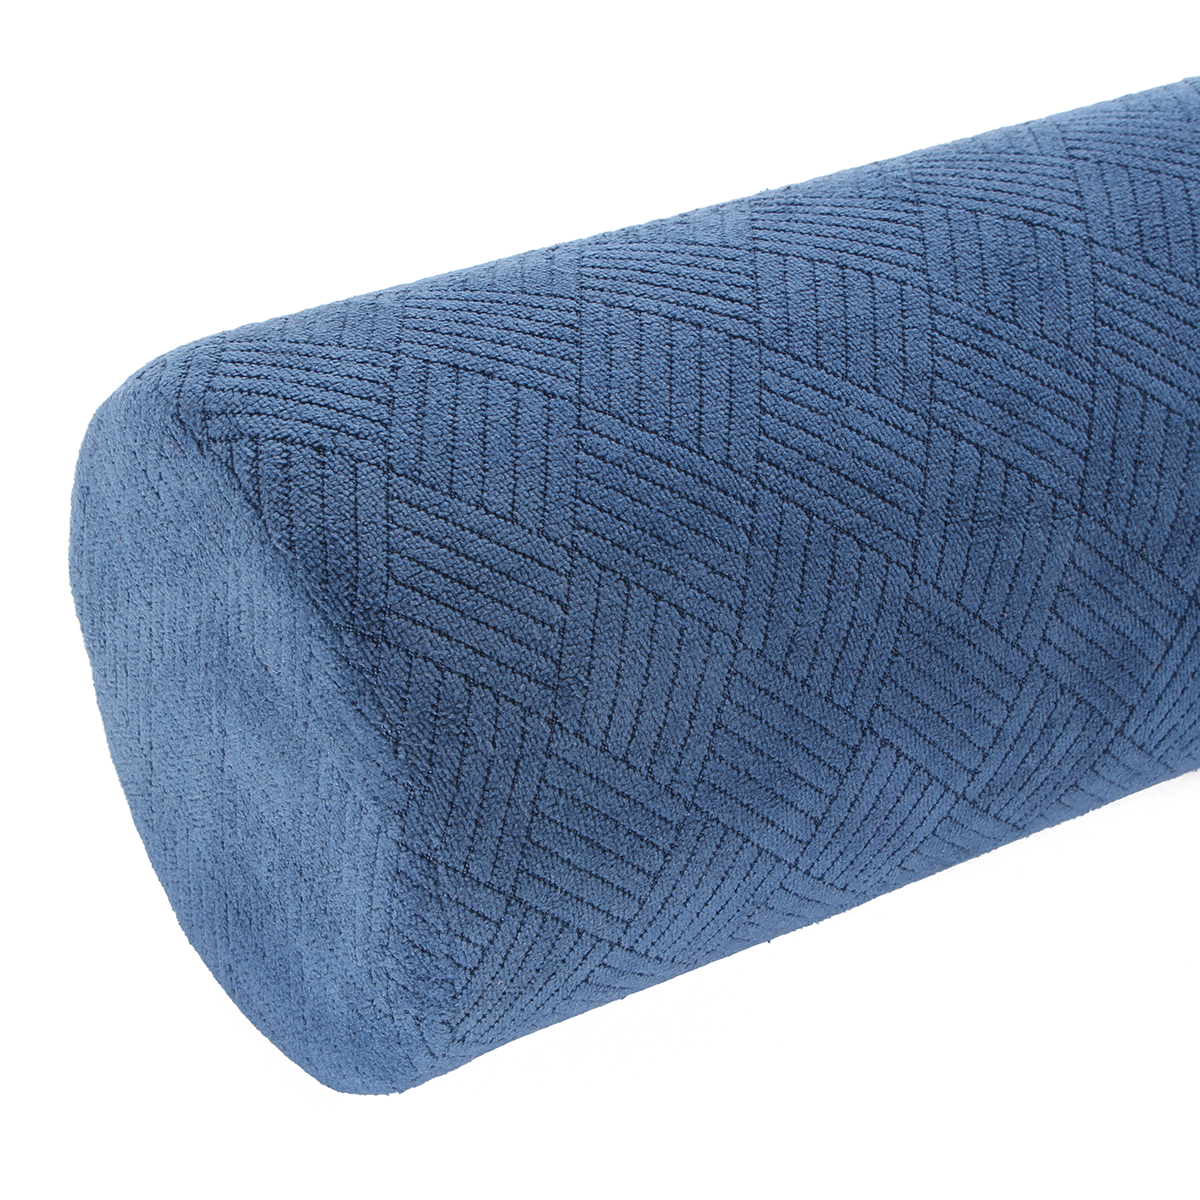 60 10cm Round Cervical Support Sleeping Positioning Roll